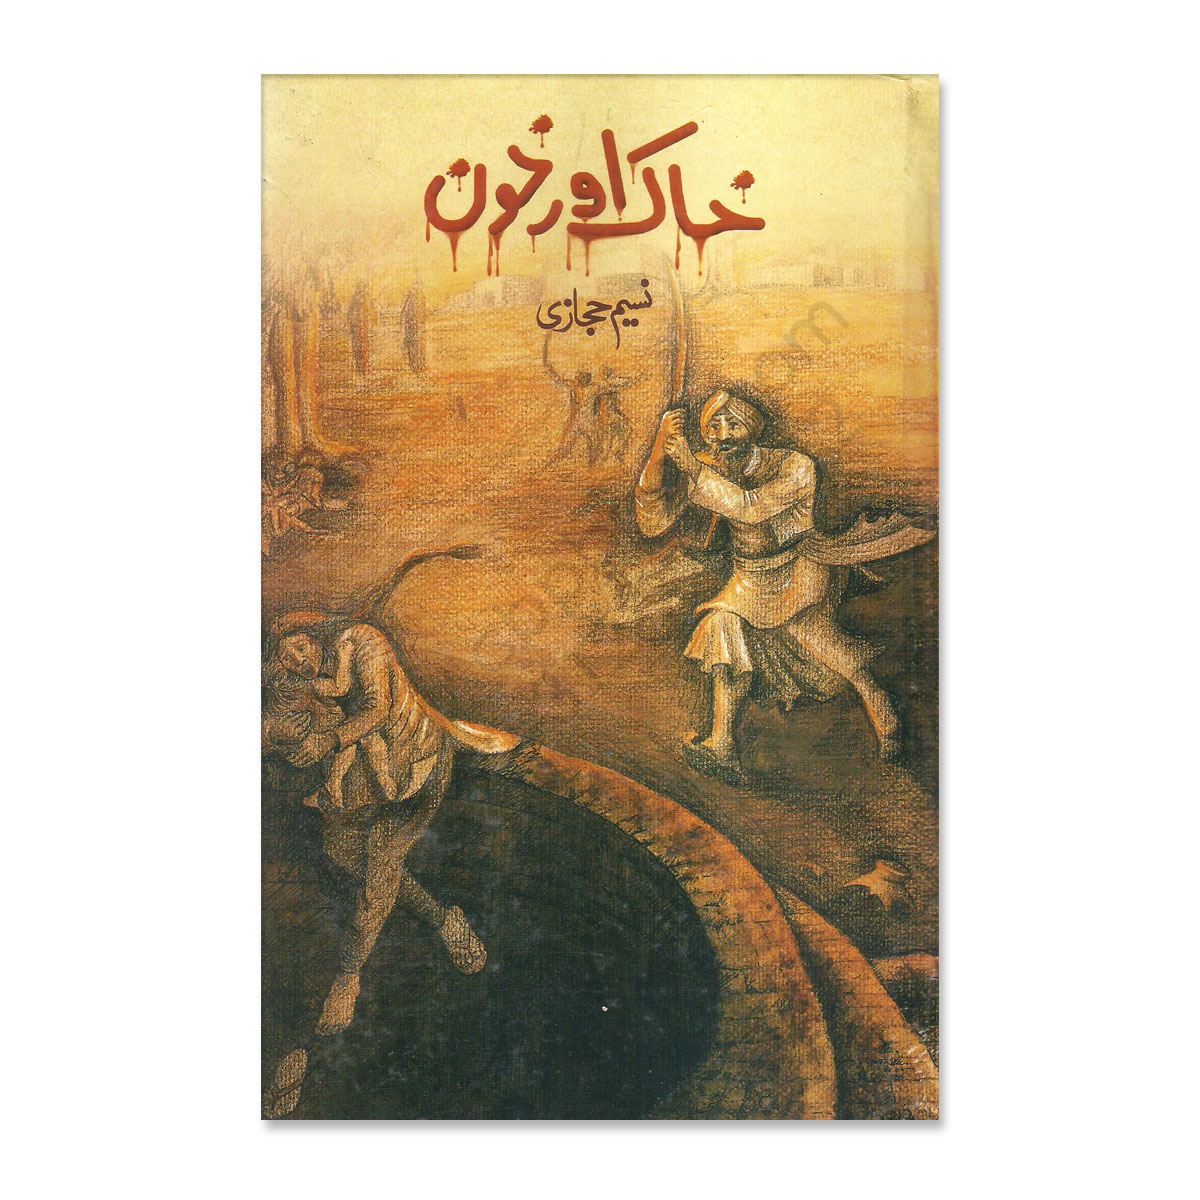 khaak aur khoon by naseem hijazi jahangir book depot